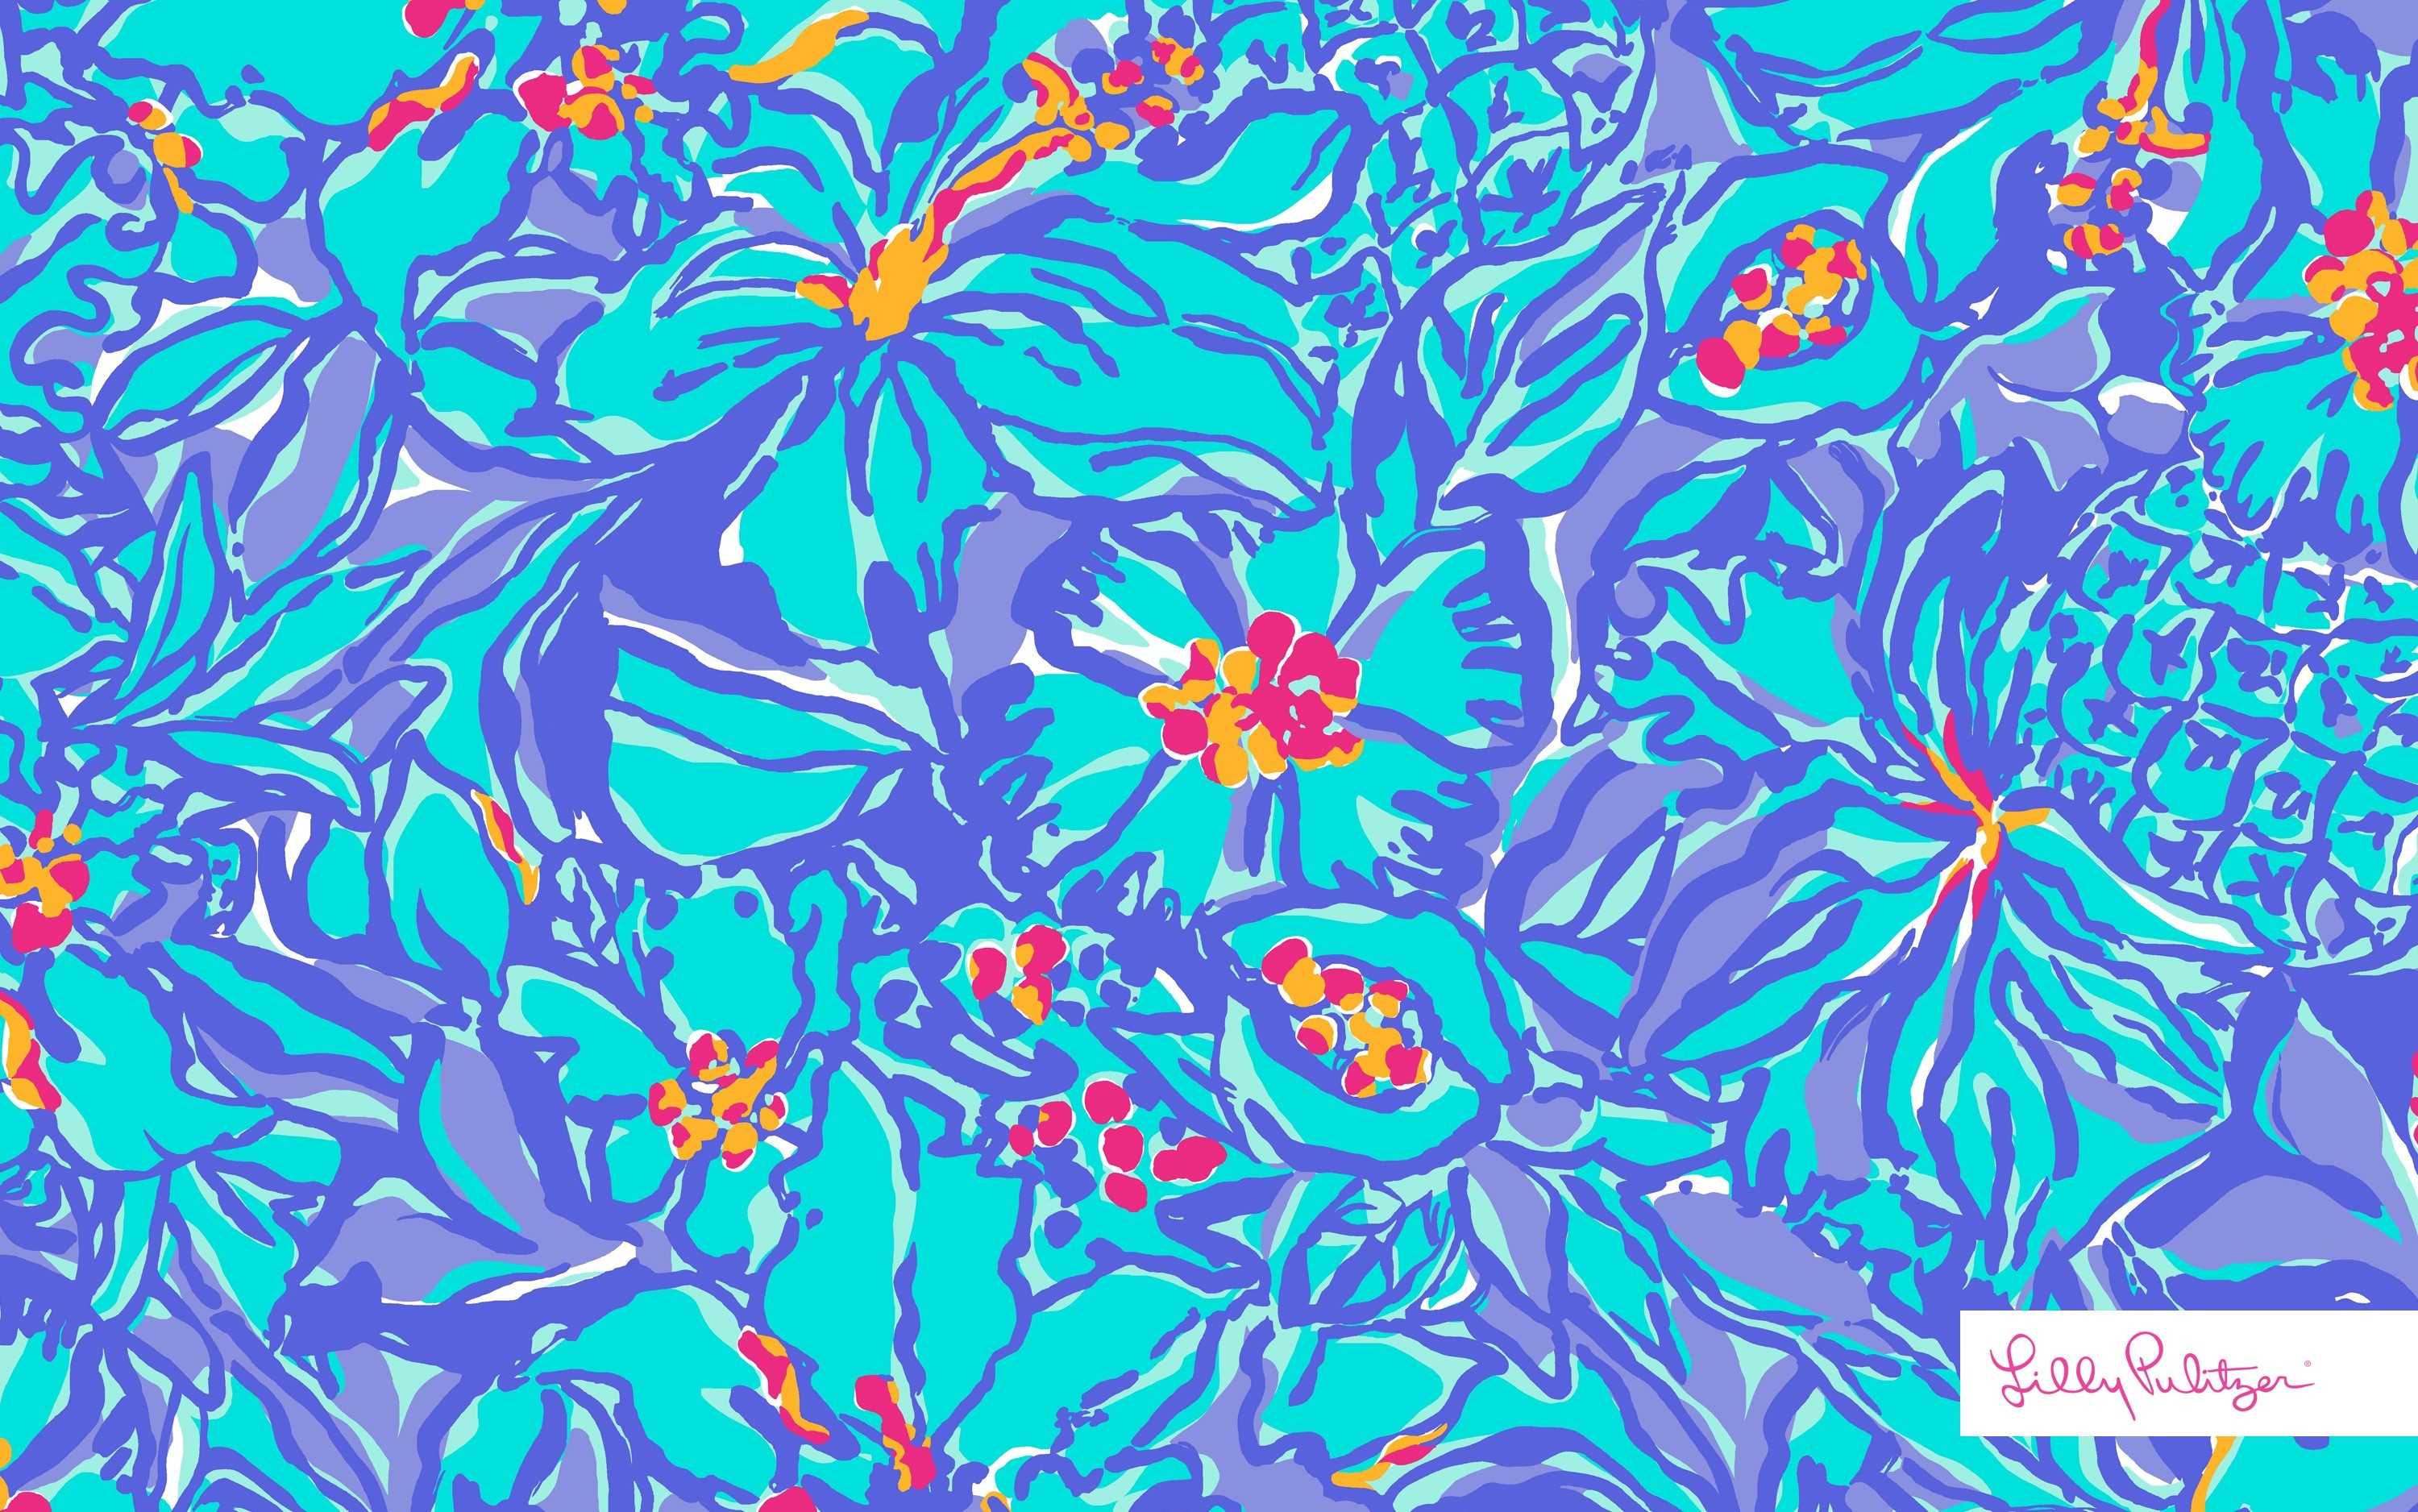 3000x1876 print worth celebrating download full size lilly pulitzer backgrounds 3000x1876